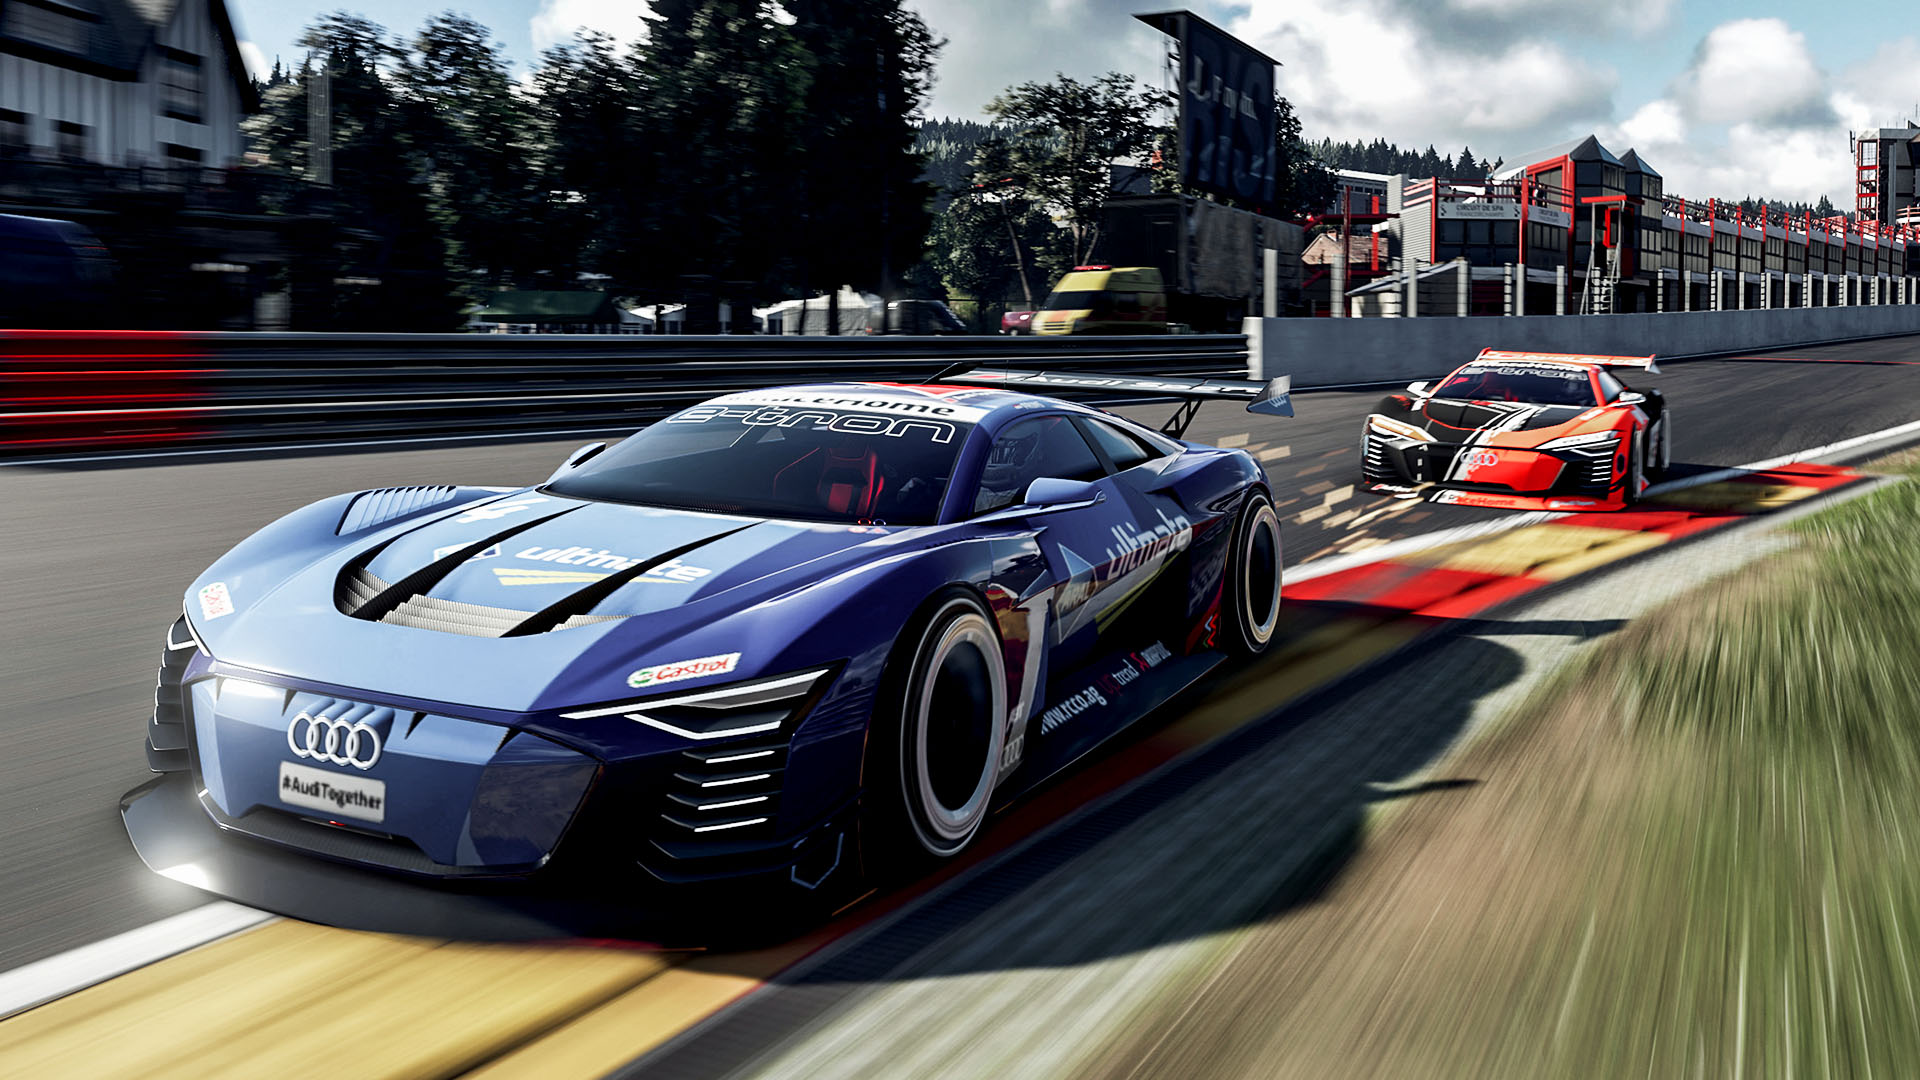 Audi e-tron Vision Gran Turismo on the racetrack